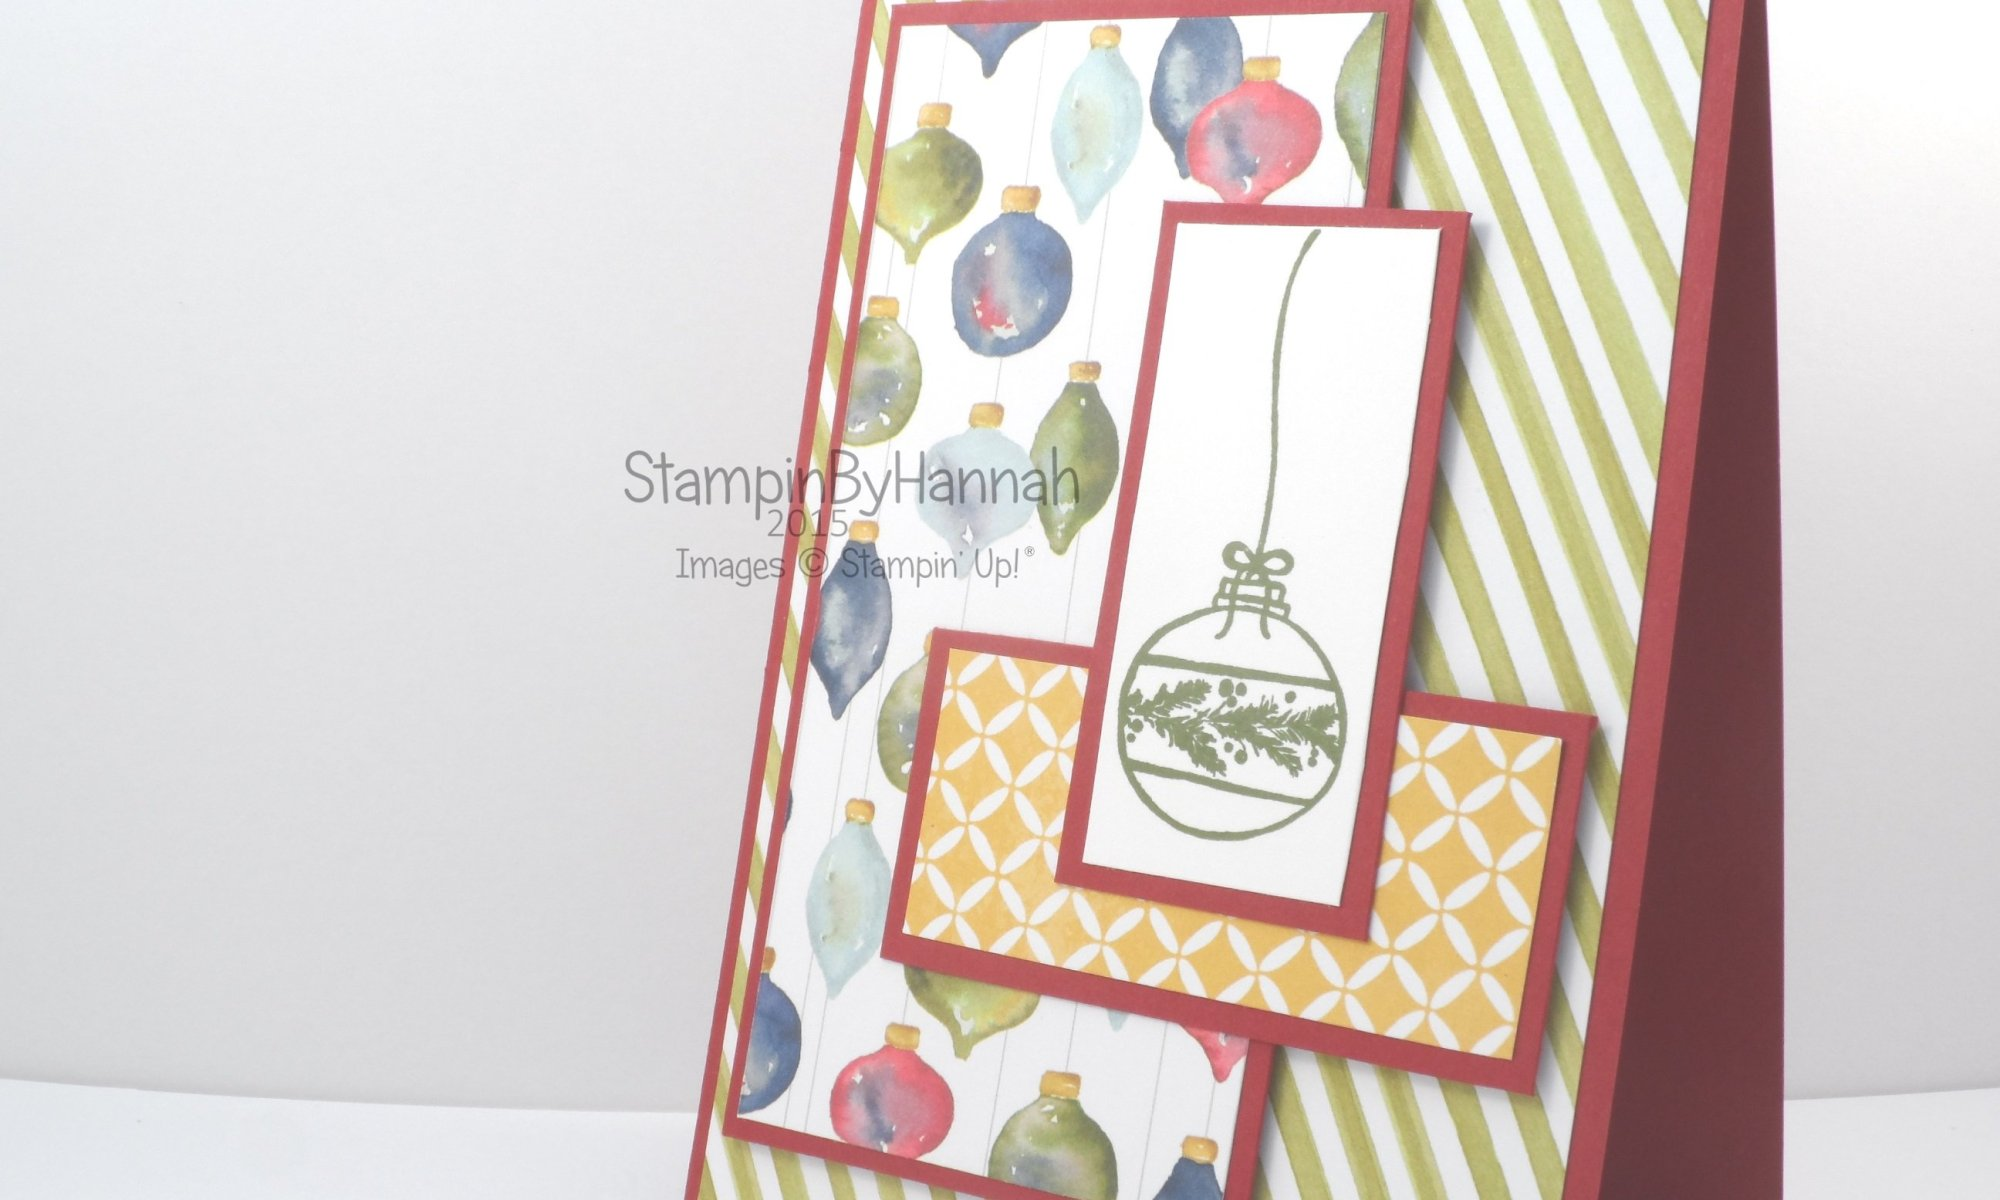 Stampin' Up! Seasons of Cheer Designer Series Paper cardmaking